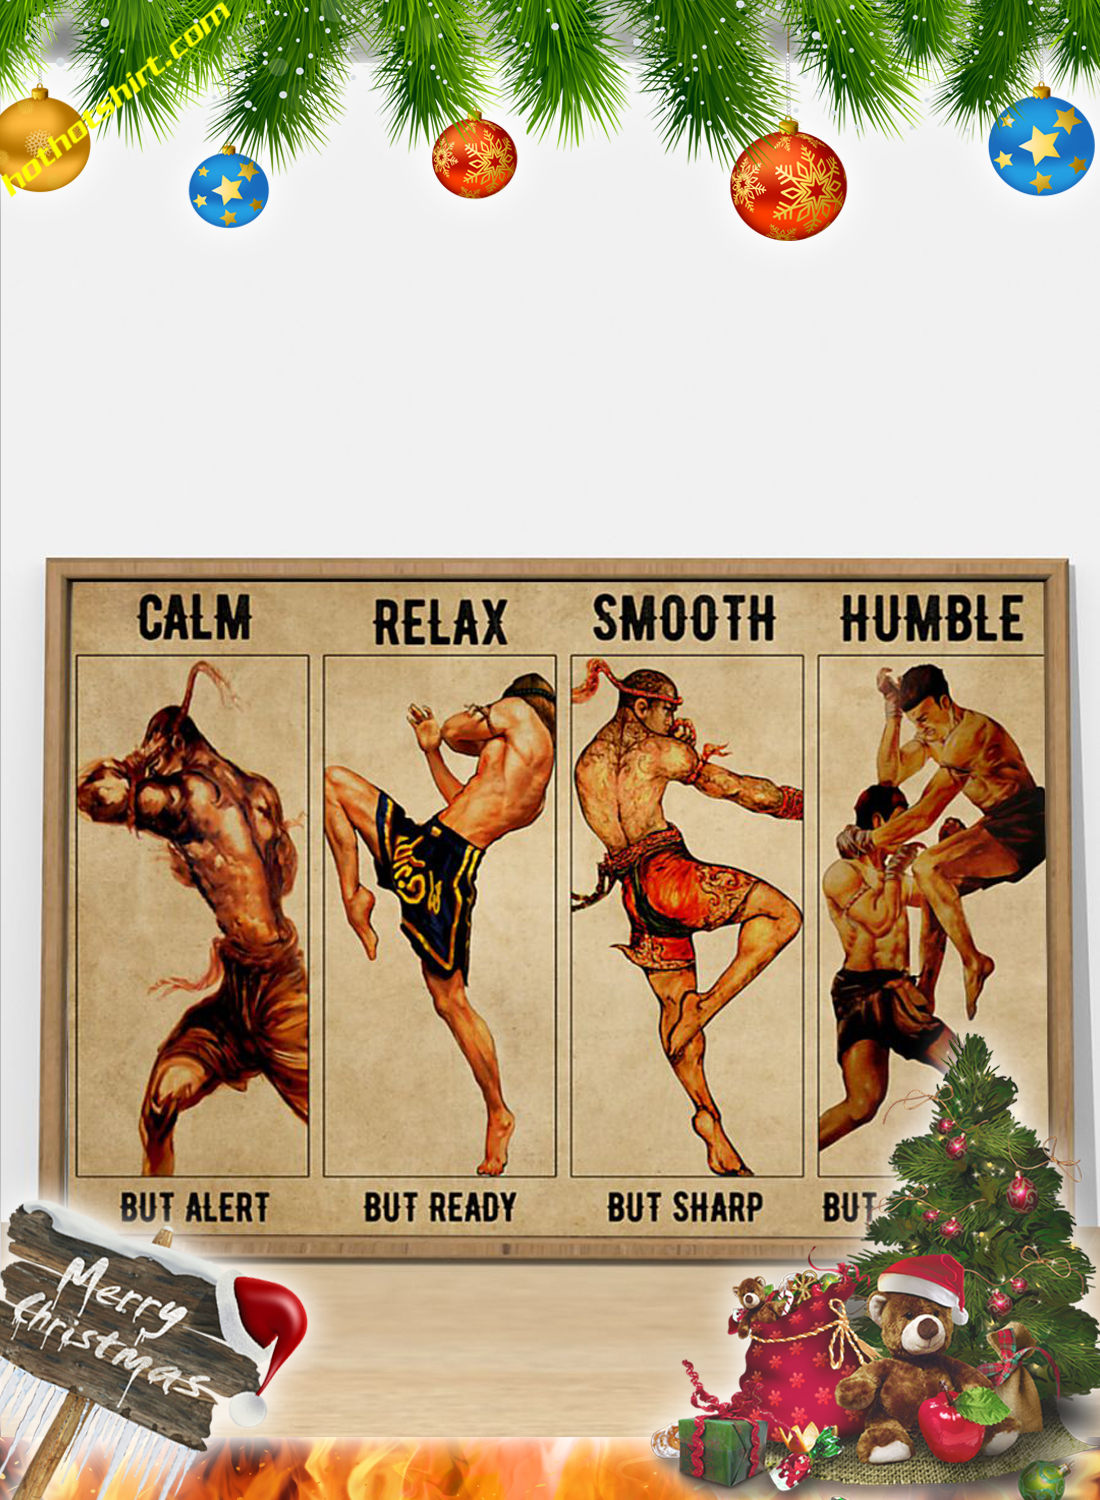 Muay Thai Calm but alert poster 1